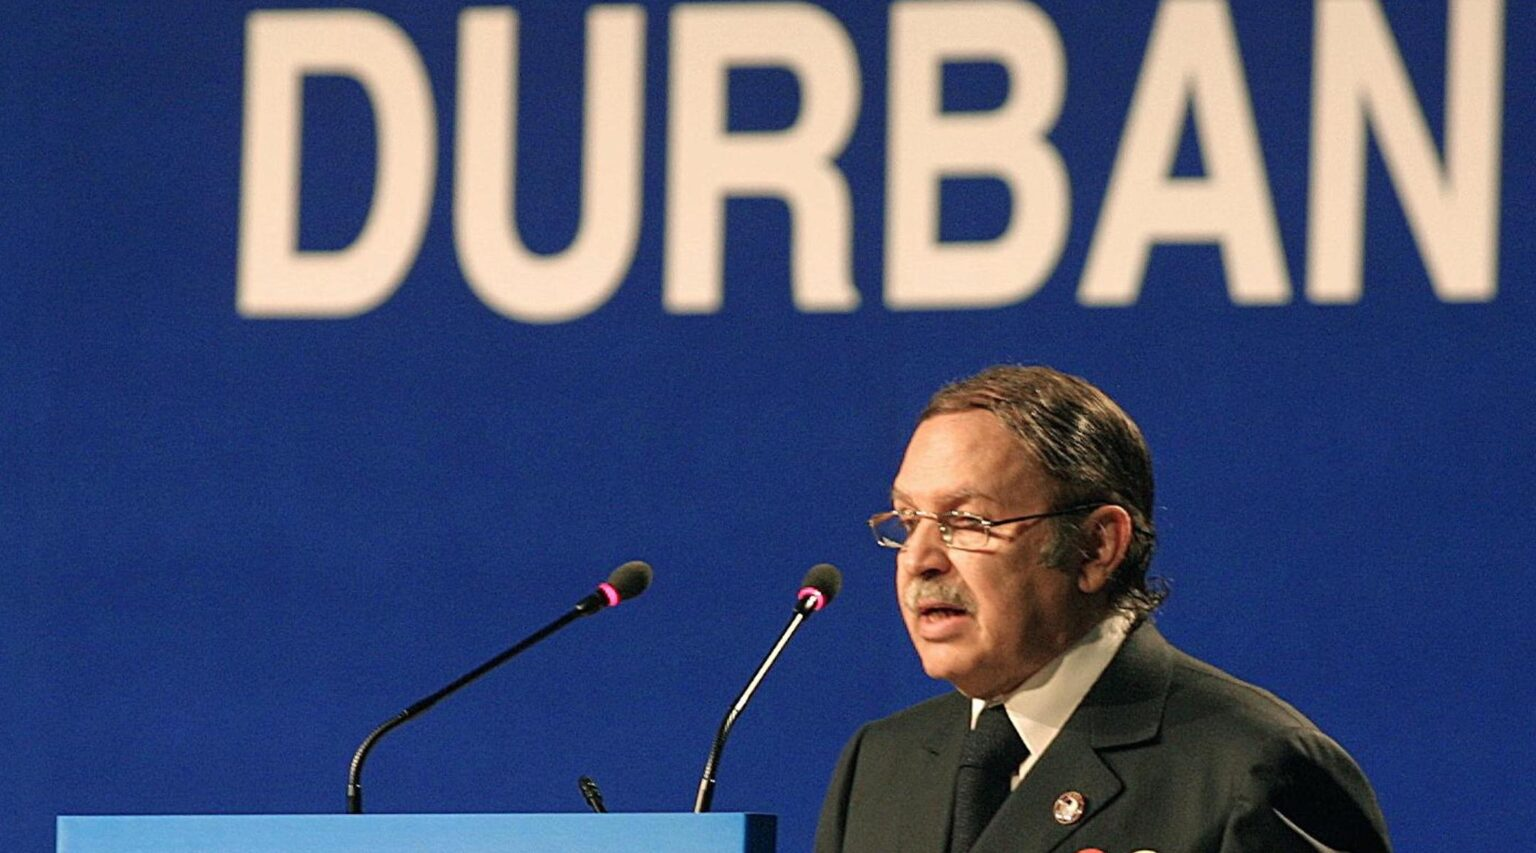 Then-Algerian President Abdelazizz Bouteflika addresses the plenary session of the United Nations' Durban Conference in Durban, South Africa, Sept. 1, 2001. (Photo/JTA-Anna Zieminski-AFP via Getty Images)